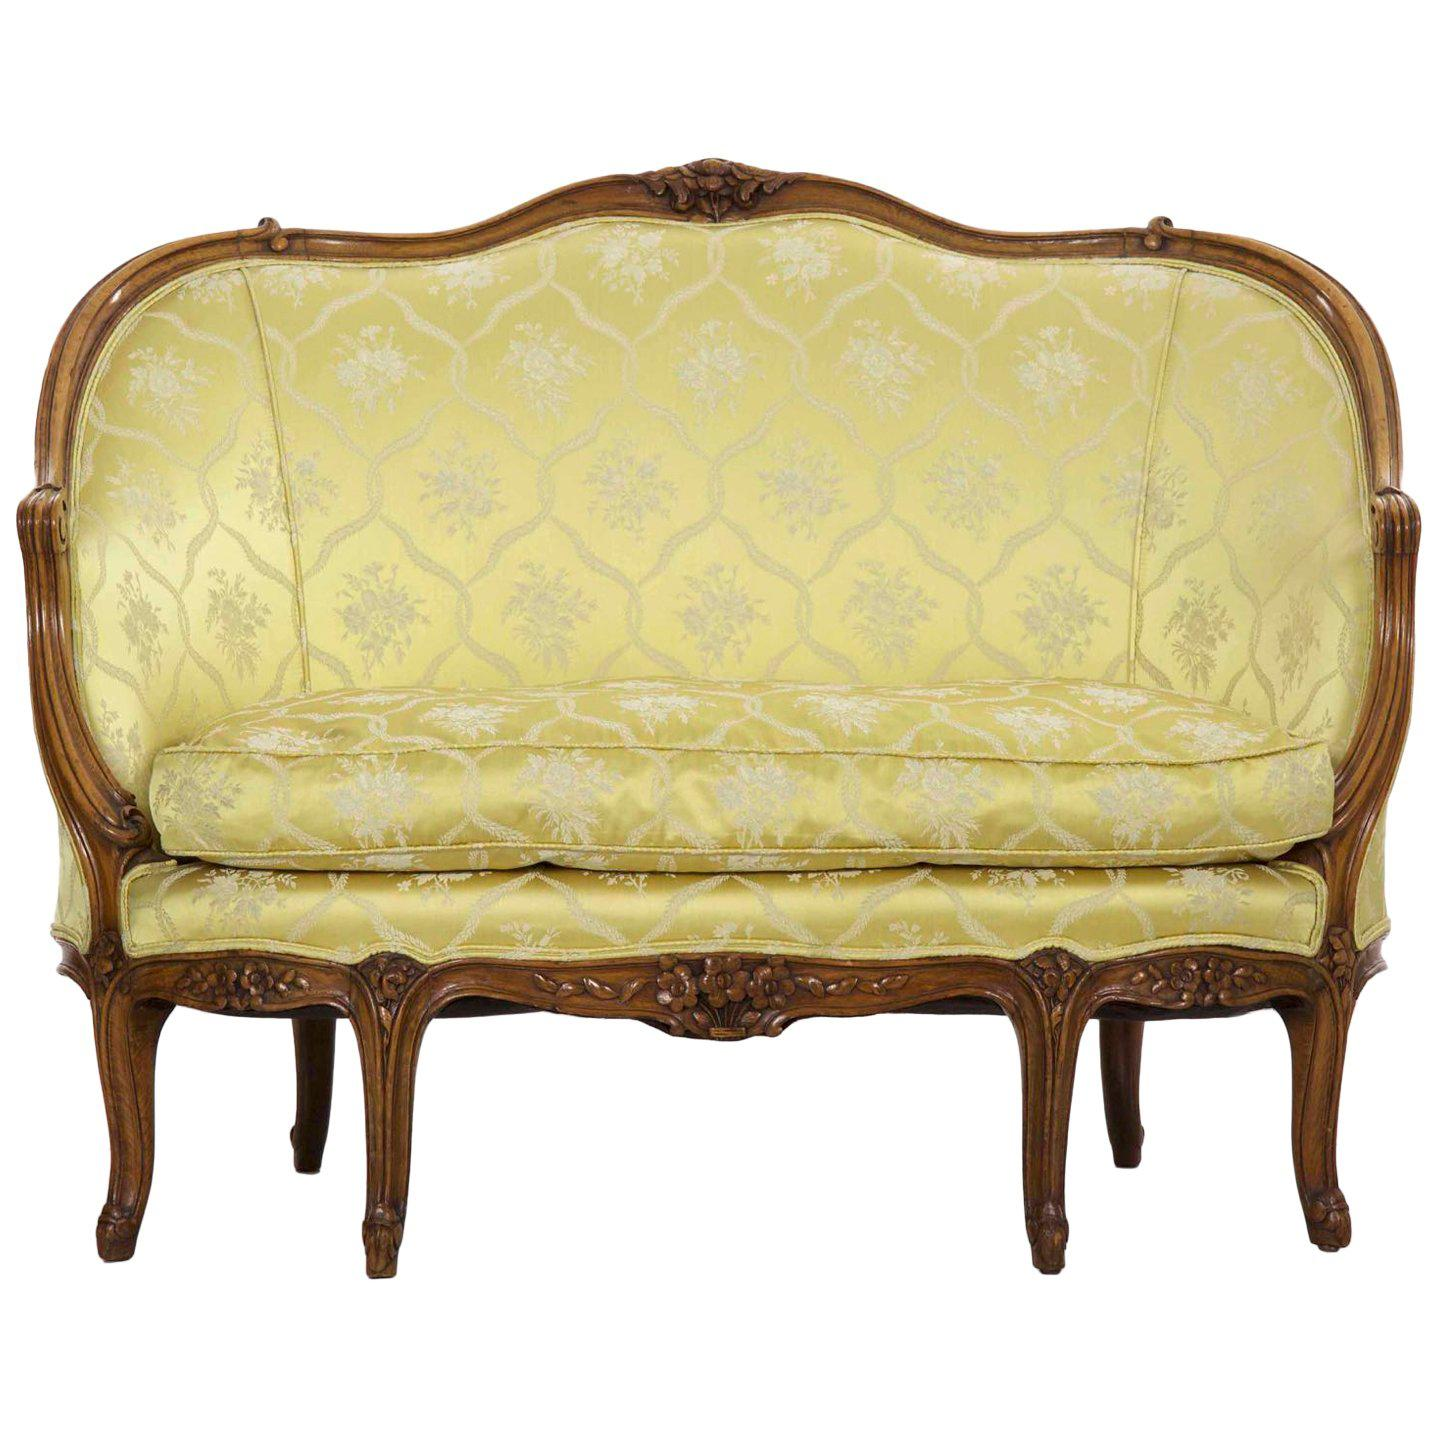 Canape Sofa 19th Century French Louis Xv Style Antique Canapé Sofa Settee